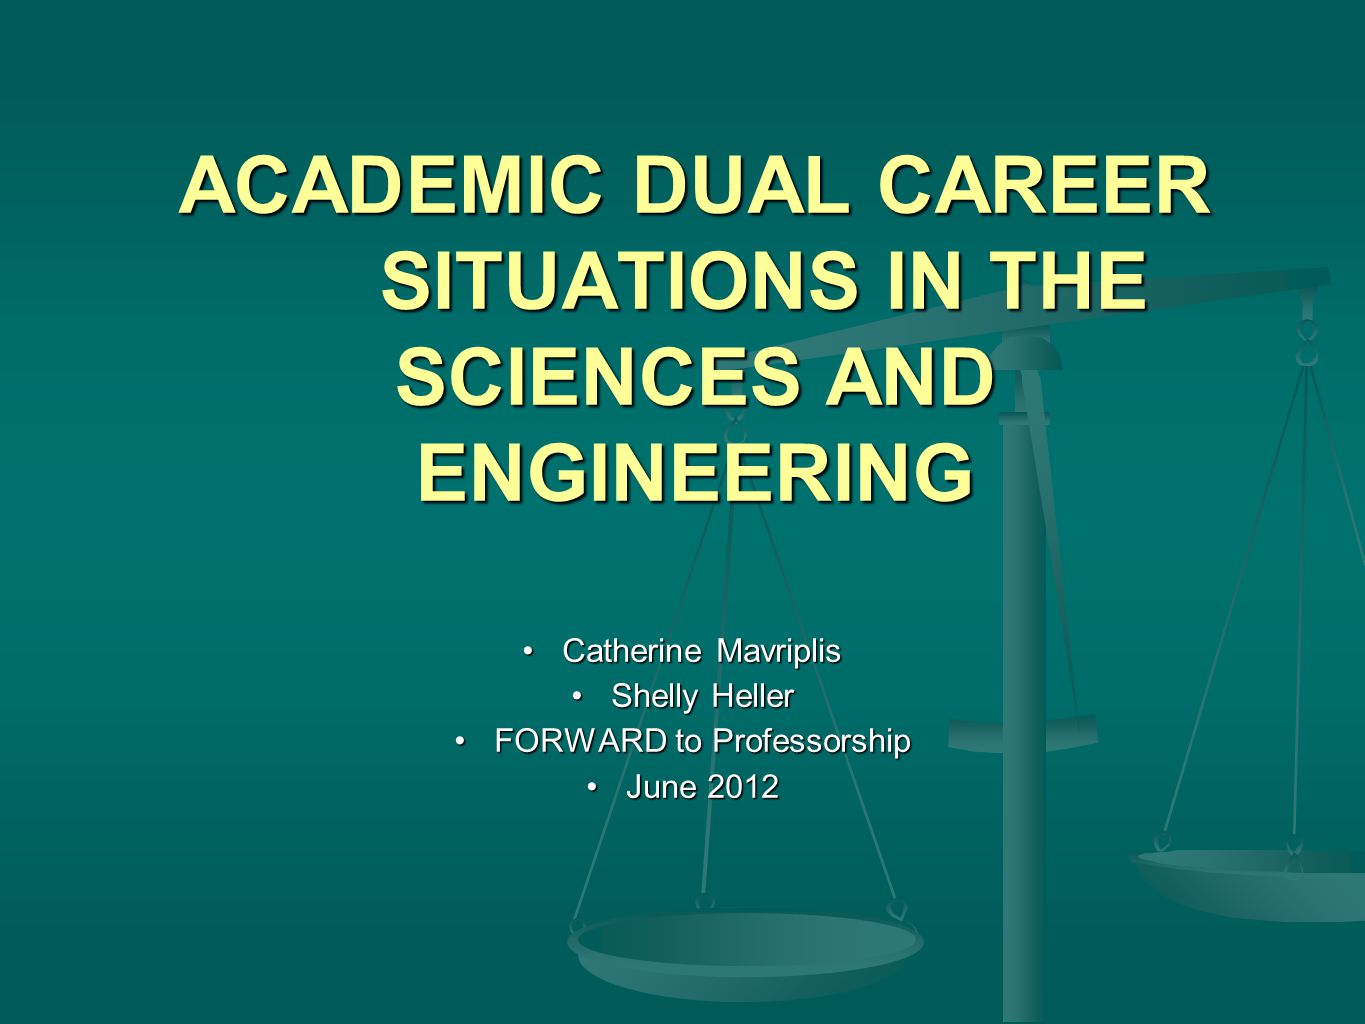 ACADEMIC DUAL CAREER SITUATIONS IN THE SCIENCES AND ENGINEERING Catherine MavriplisCatherine Mavriplis Shelly HellerShelly Heller FORWARD to ProfessorshipFORWARD to Professorship June 2012June 2012